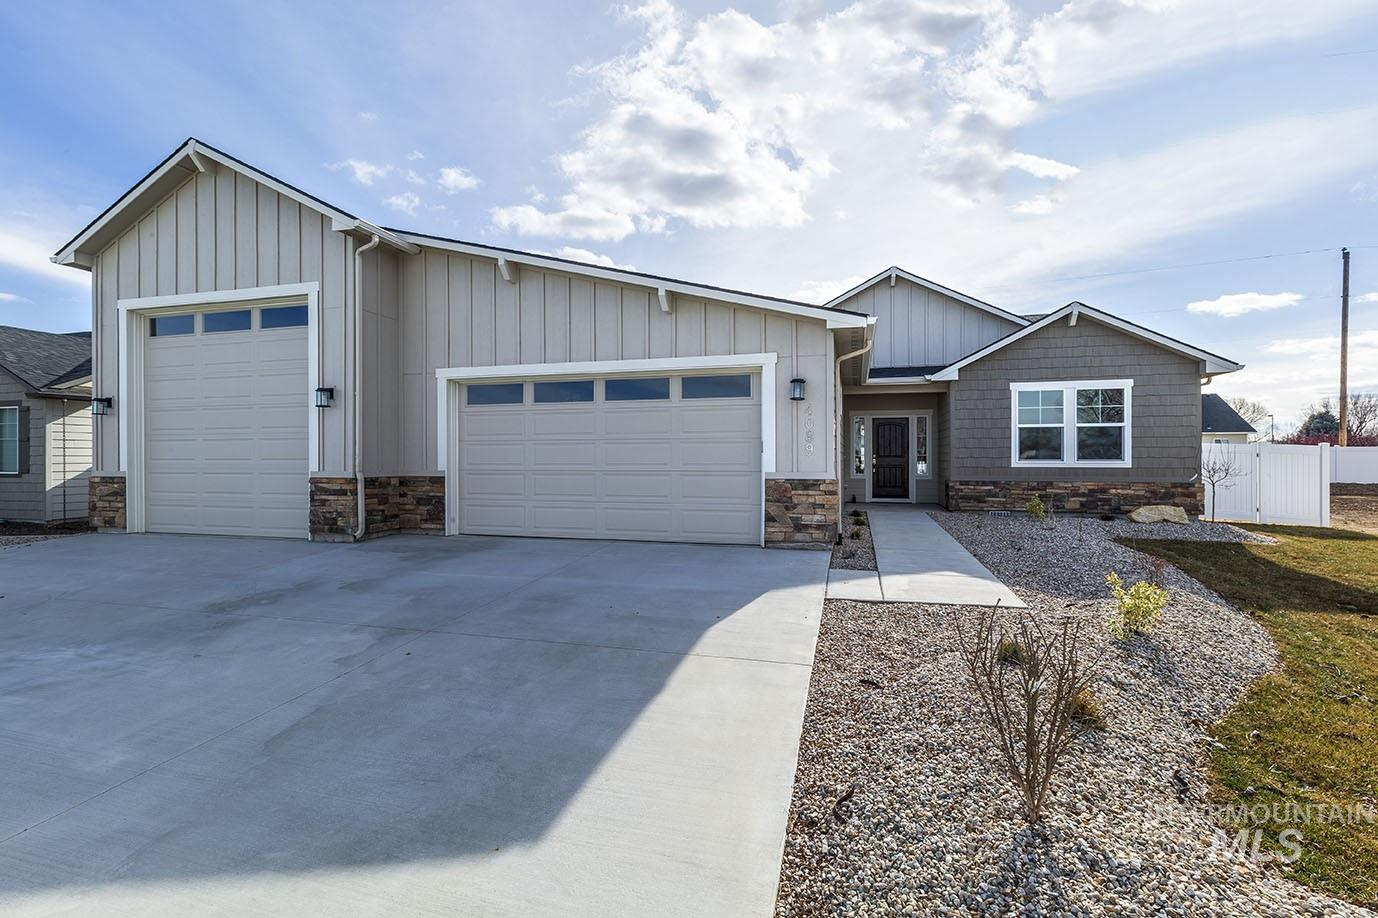 51 S Ravine Way Property Photo - Nampa, ID real estate listing